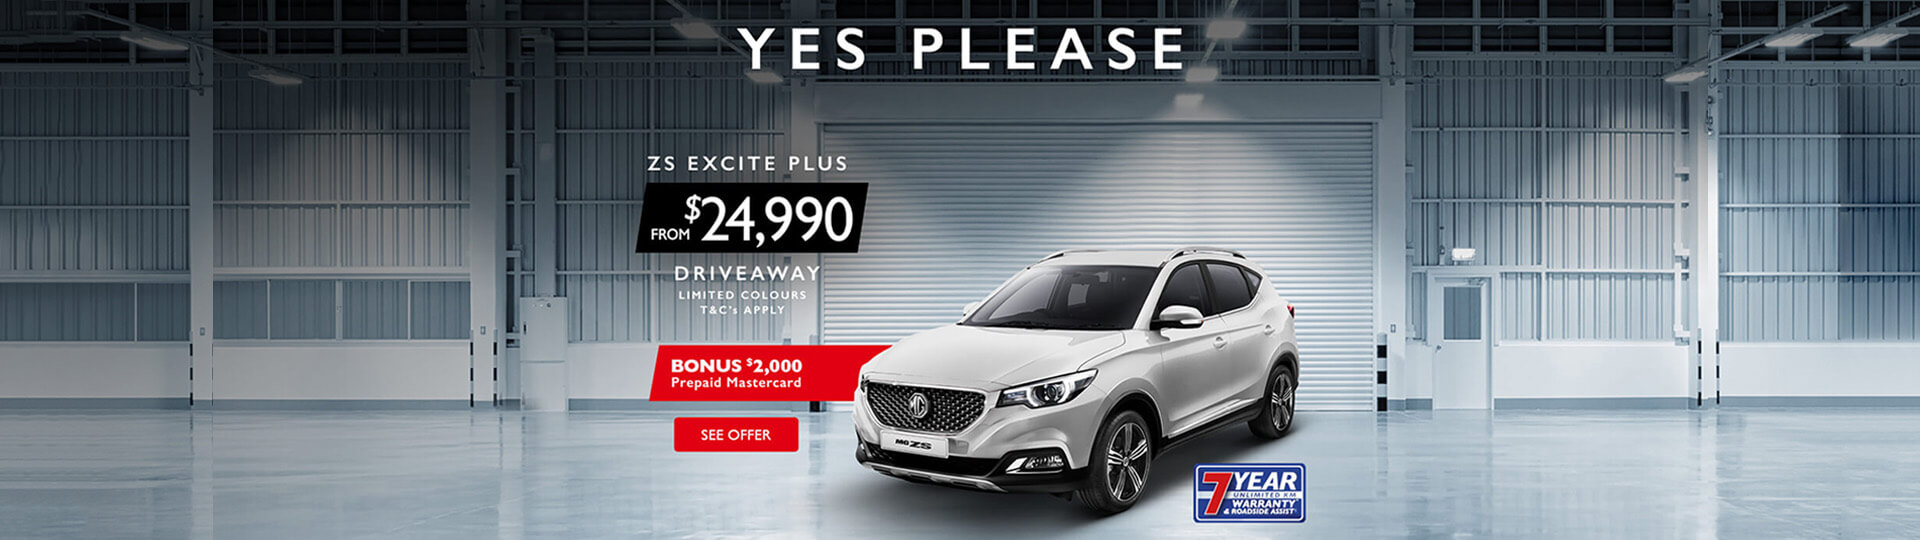 Yes please. ZS Excite Plus from $24,990 Driveaway. Bonus $2,000 Prepaid Mastercard. See Offer